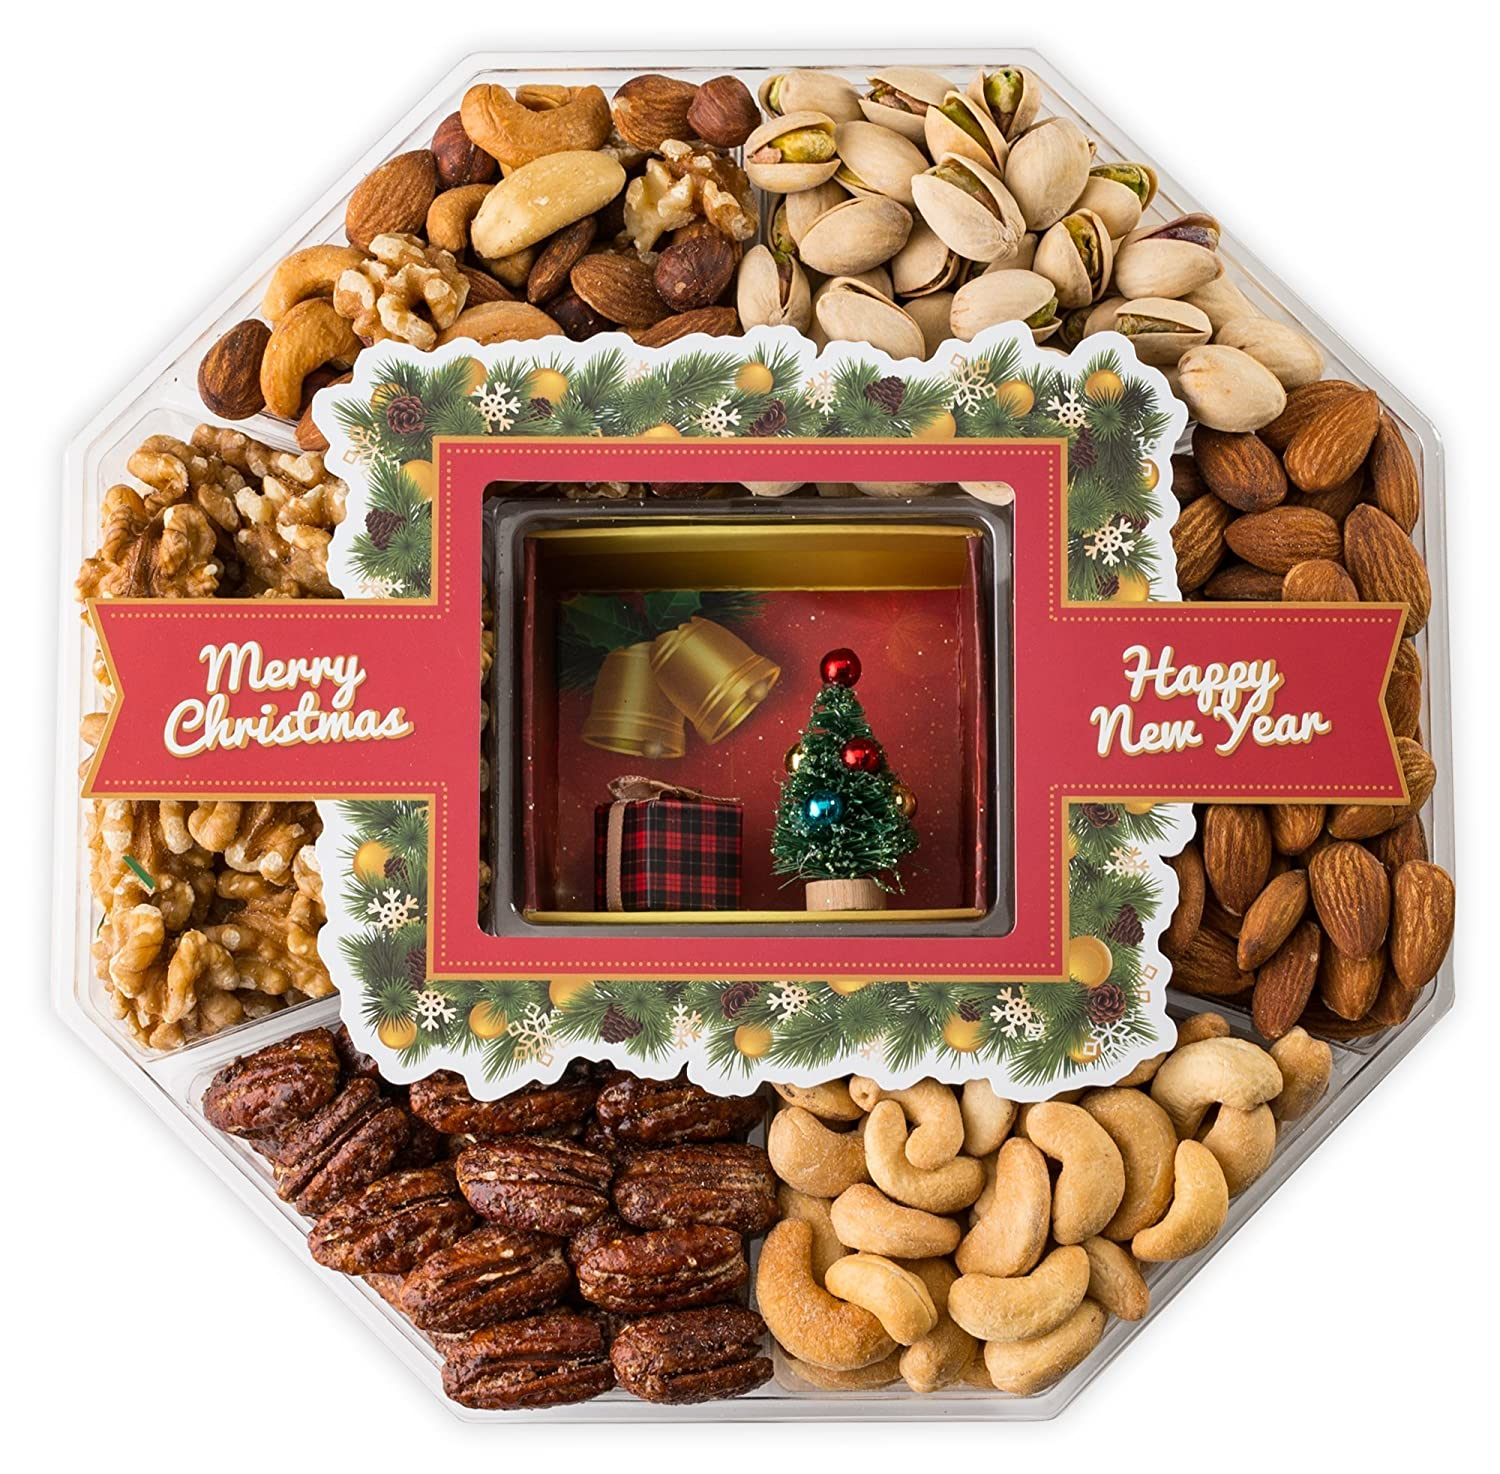 Mini Wishes Jumbo Merry Christmas Gift Baskets With The Special Cocoa Jewelry Anting Elegant Love Fresh Variety Of Gourmet Nuts And Miniature Tree Top Idea For New Year Holiday Men